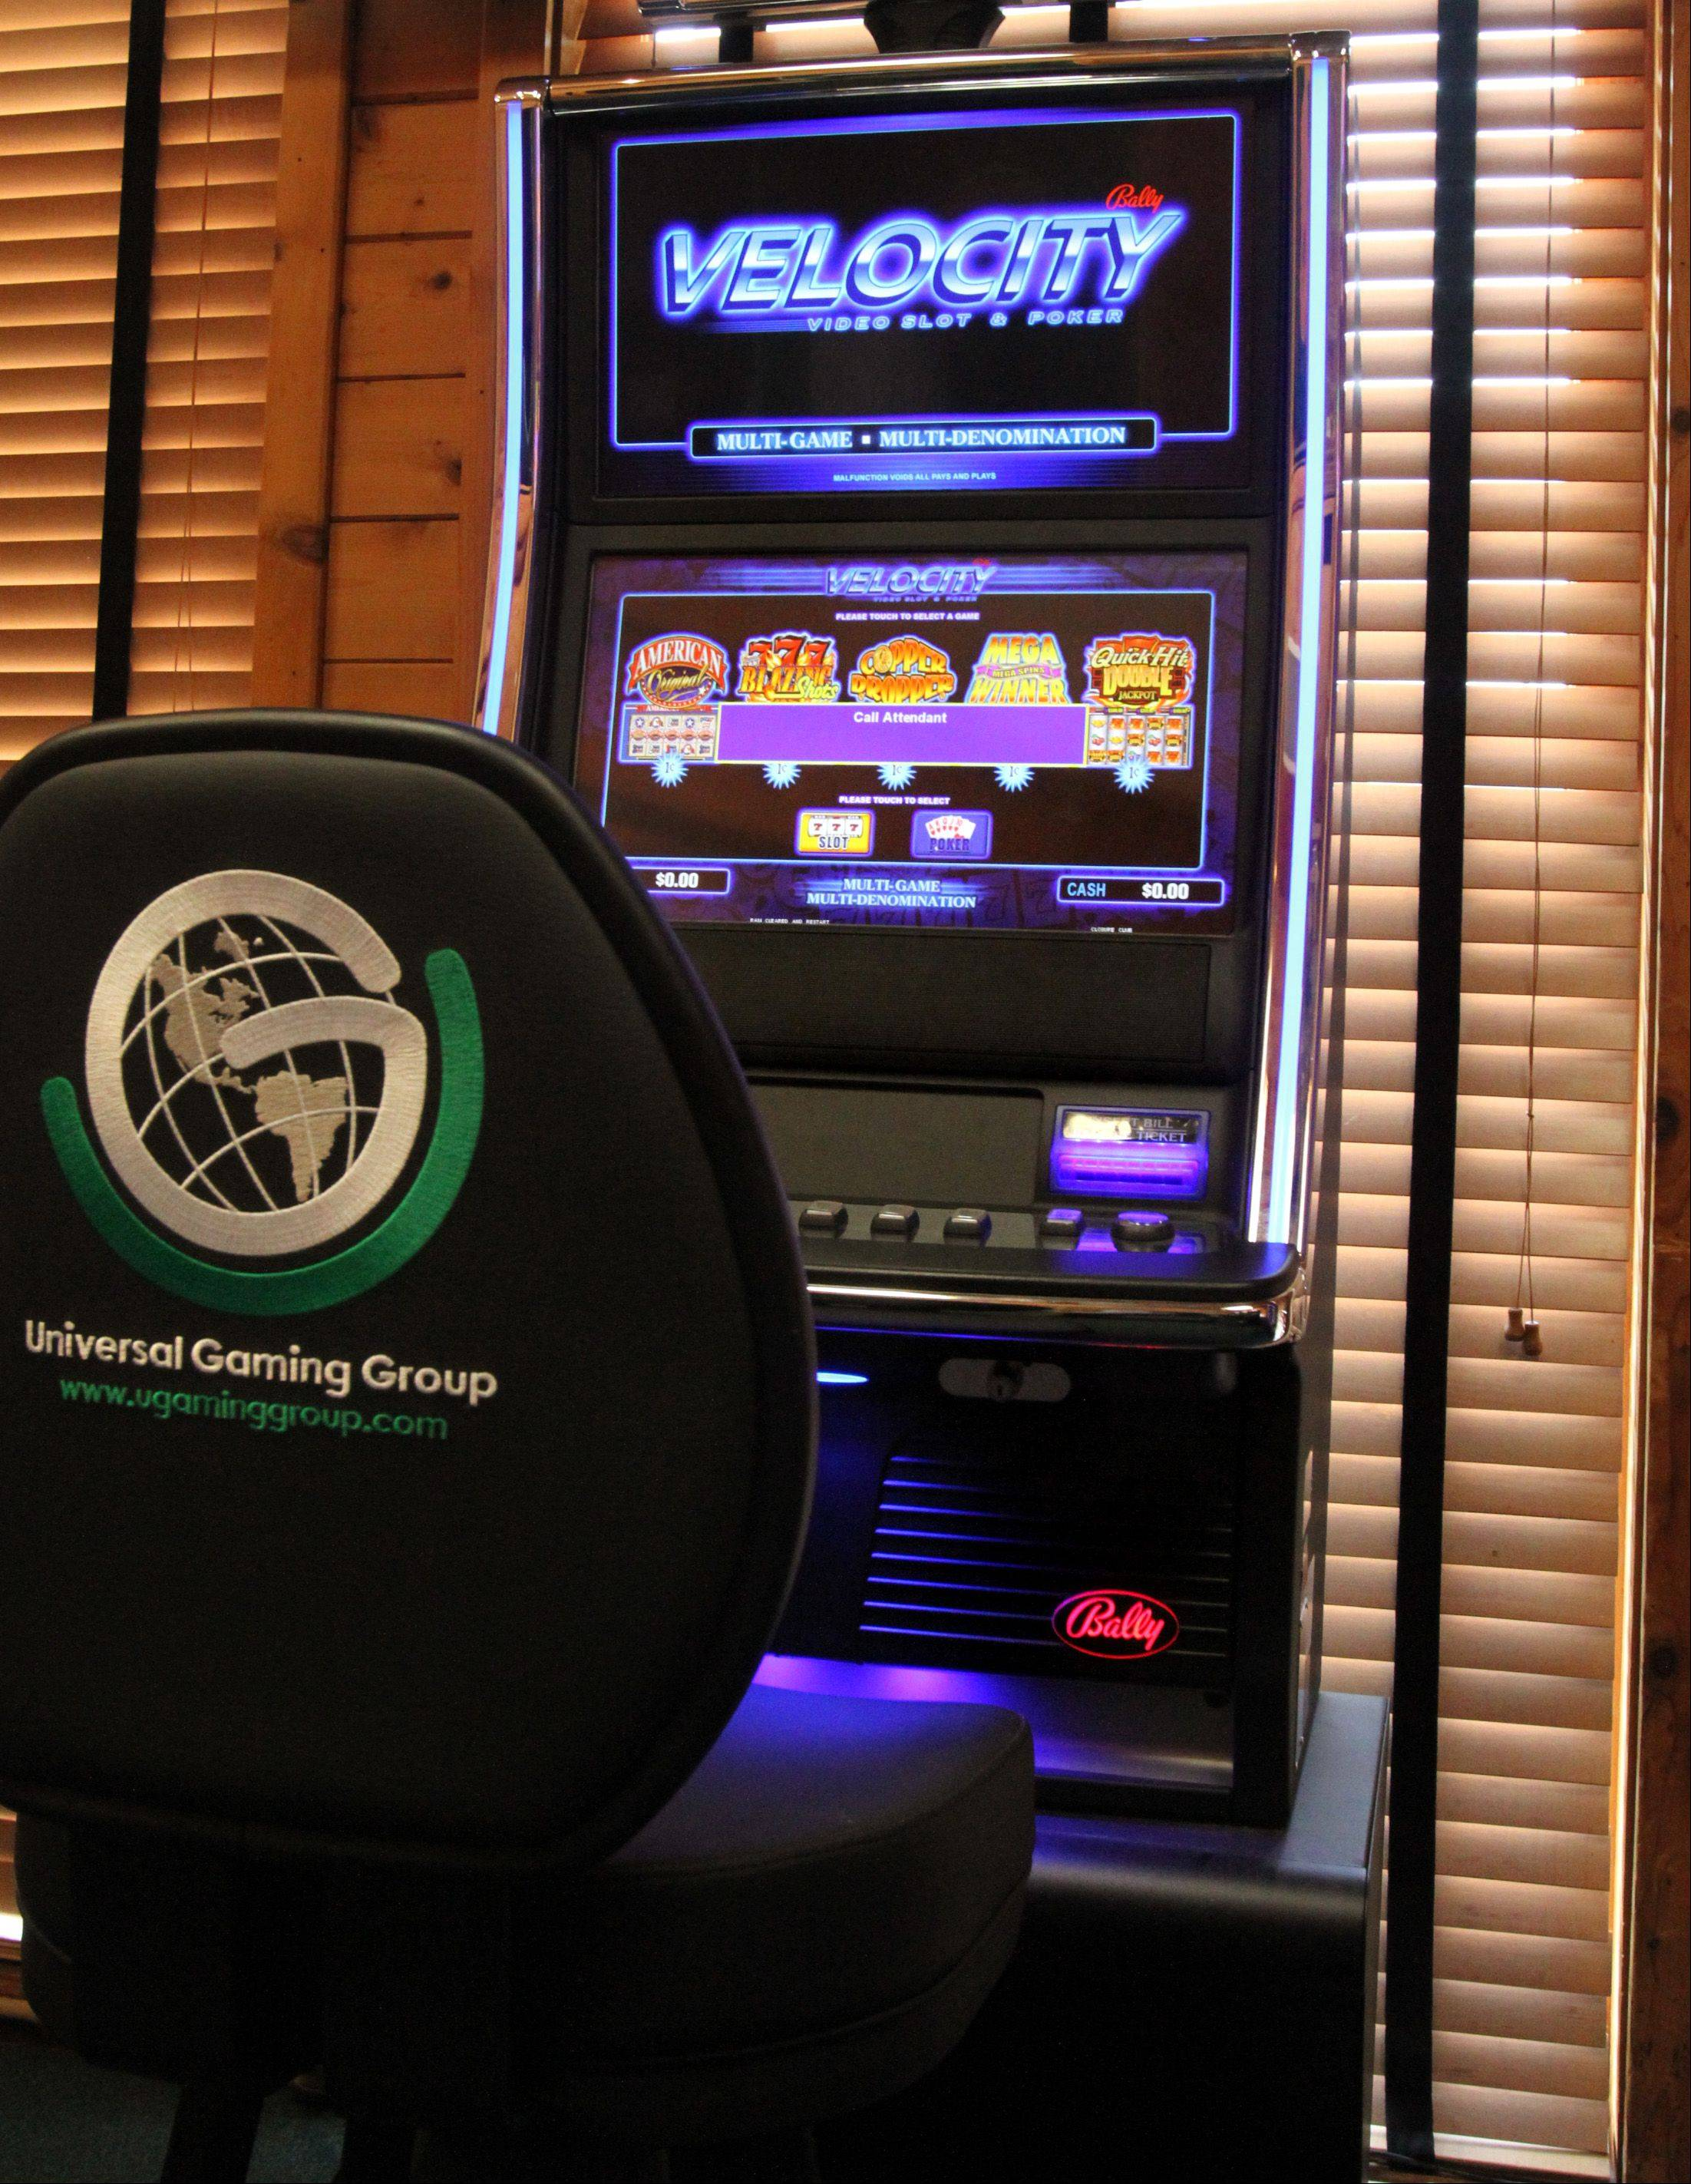 A Universal Gaming Group Velocity poker gambling machine installed at the Assembly in Hoffman Estates. Mundelein officials are taking the first steps to allwoing video gambling in the village